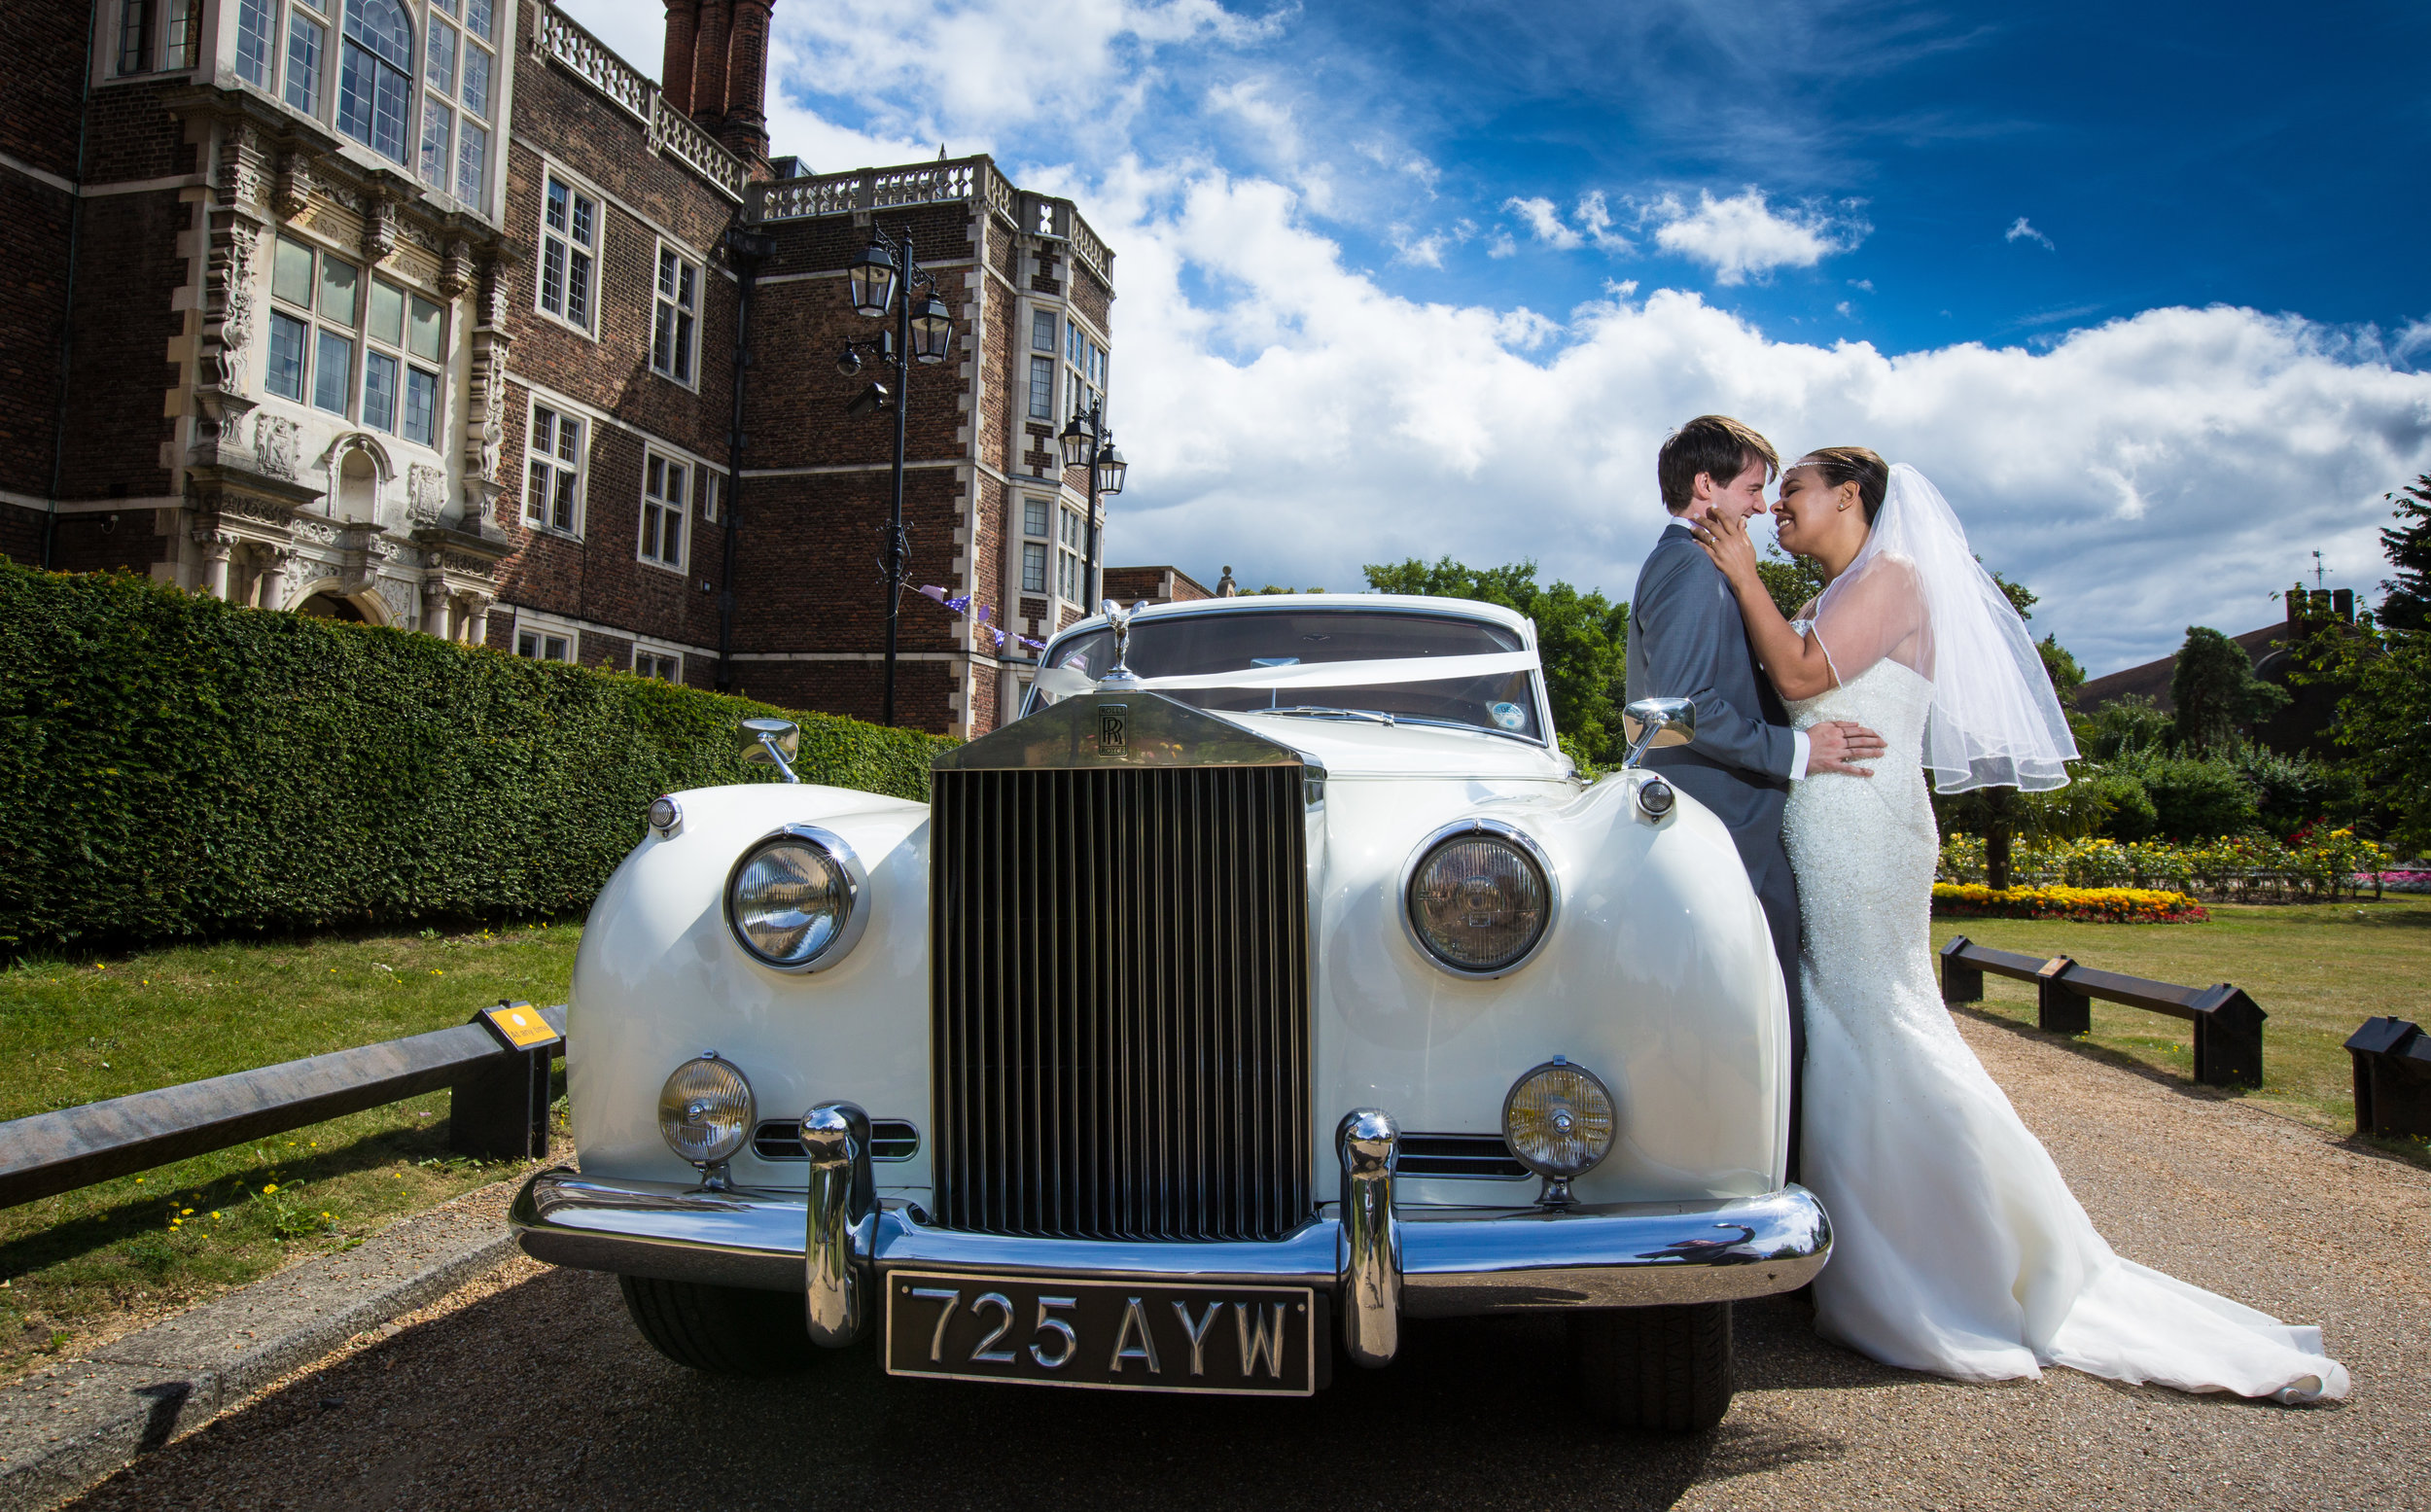 Saint-Alfege-Church-greenwich-wedding-charlton-london-rolls-royce-200